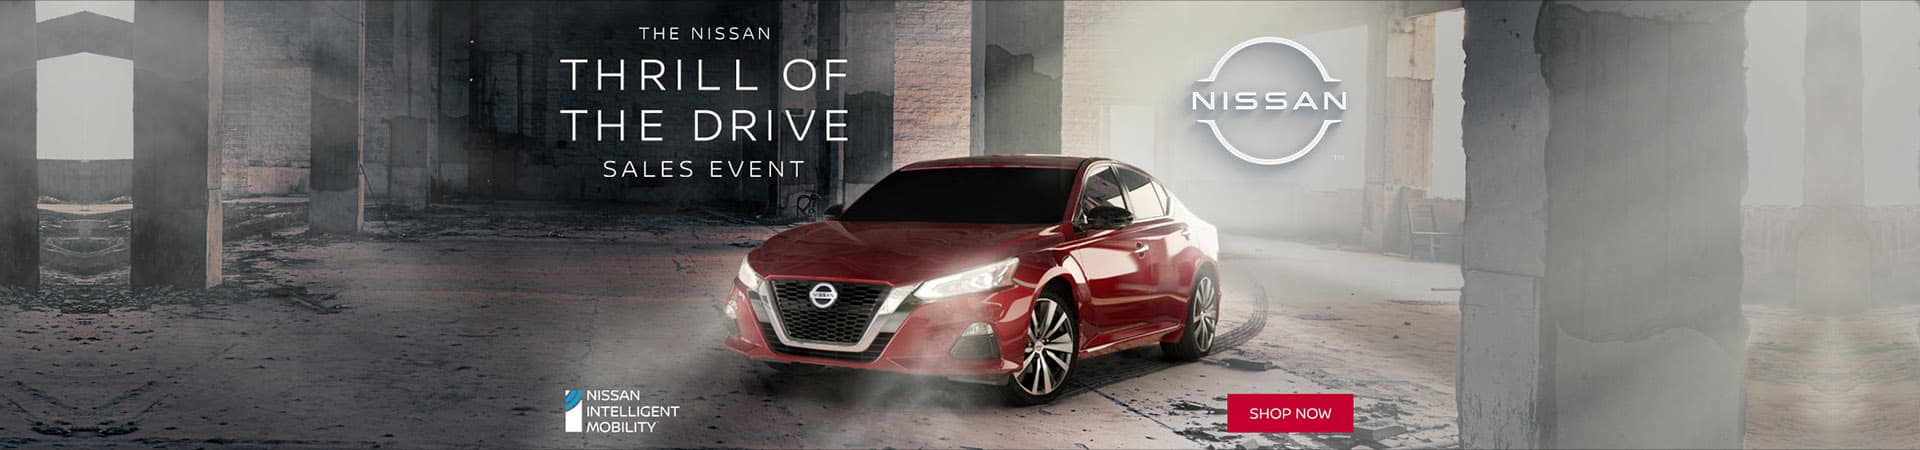 Nissan Thrill of the Drive Event